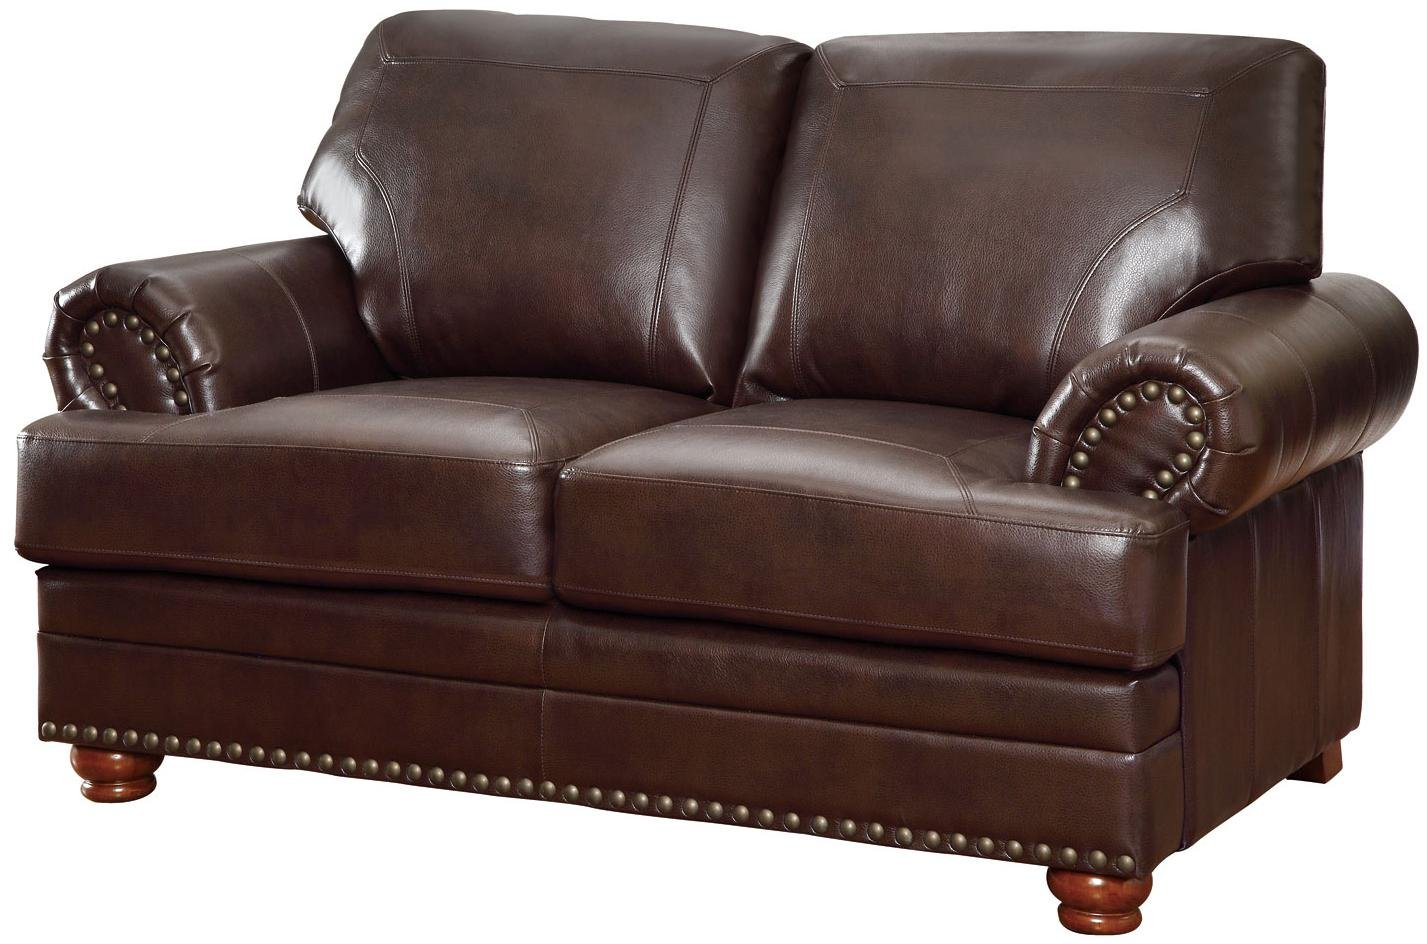 Amazon.com: Coaster Colton Traditional Brown Love Seat With Rolled Arms:  Kitchen U0026 Dining